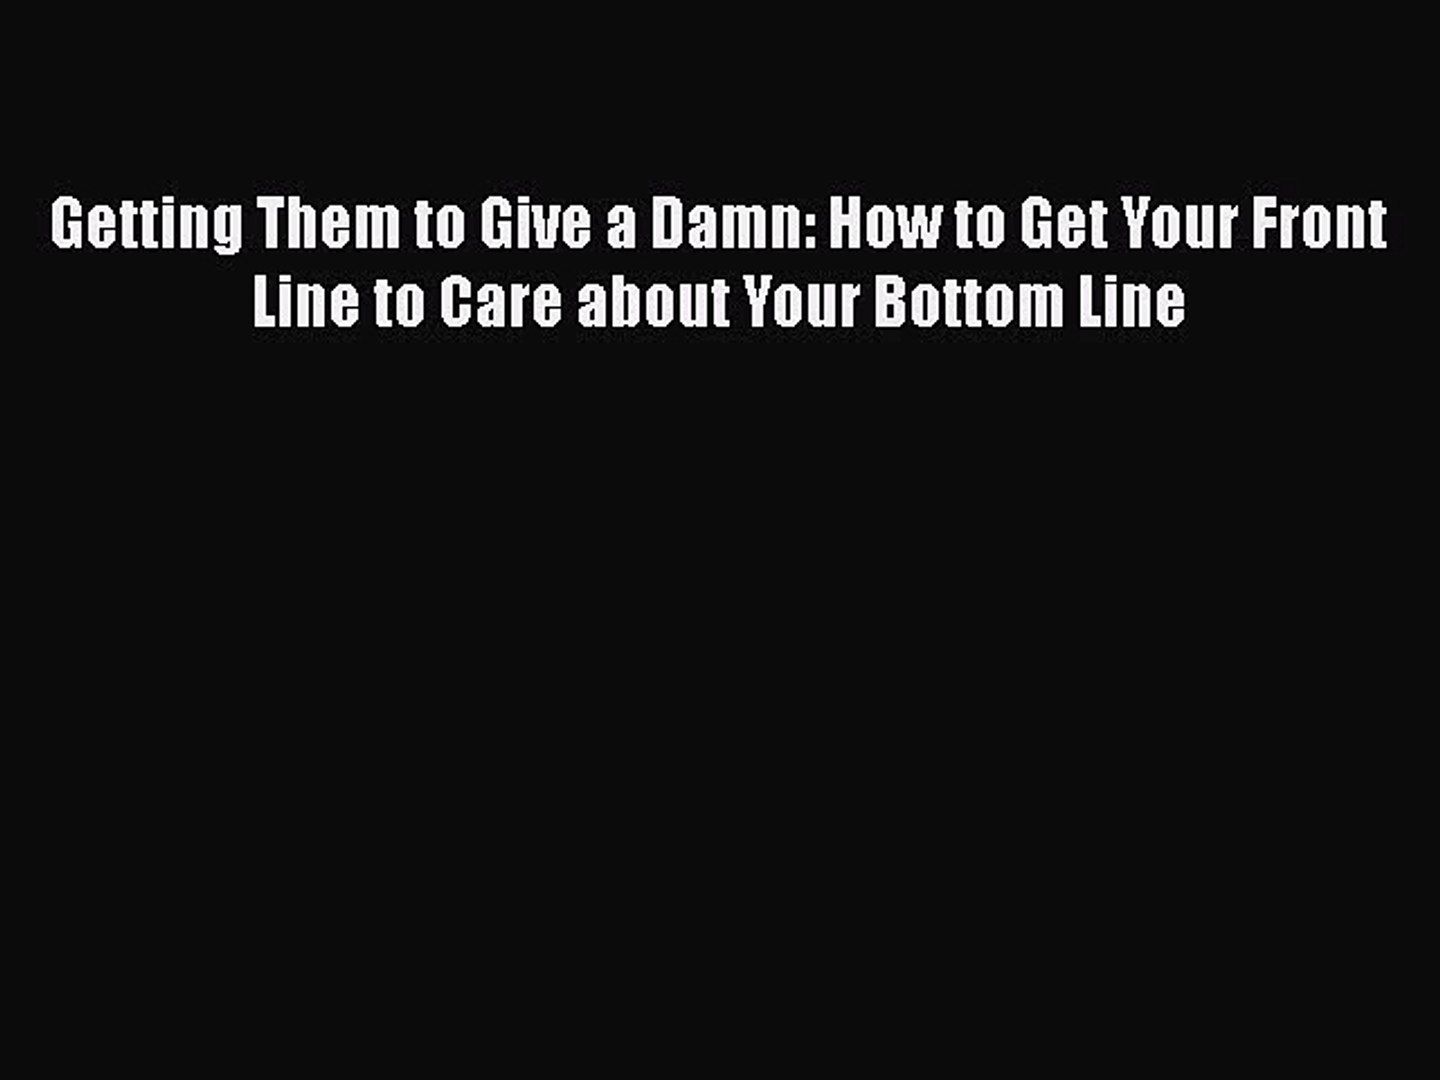 Read Getting Them to Give a Damn: How to Get Your Front Line to Care about Your Bottom Line